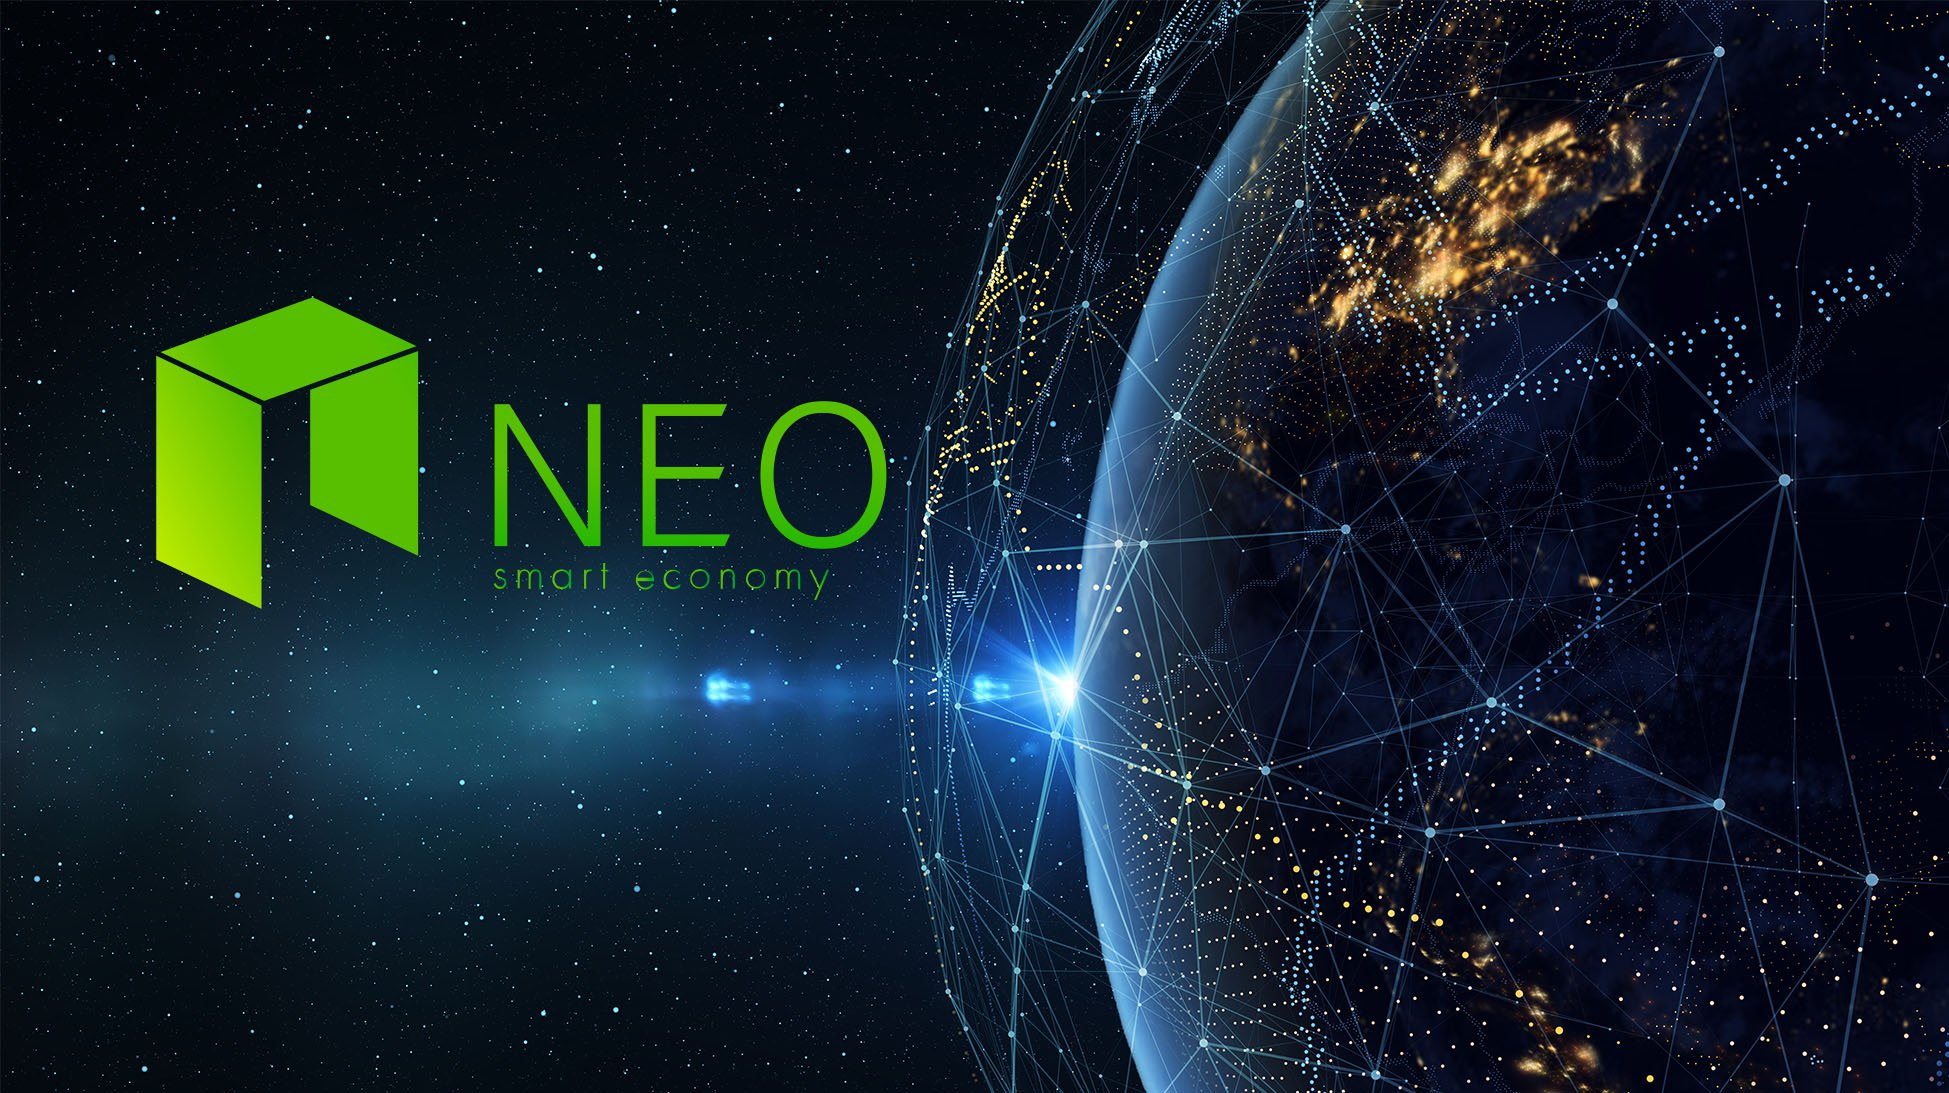 NEO Completes Rebranding; Announces Blockchain Partnerships